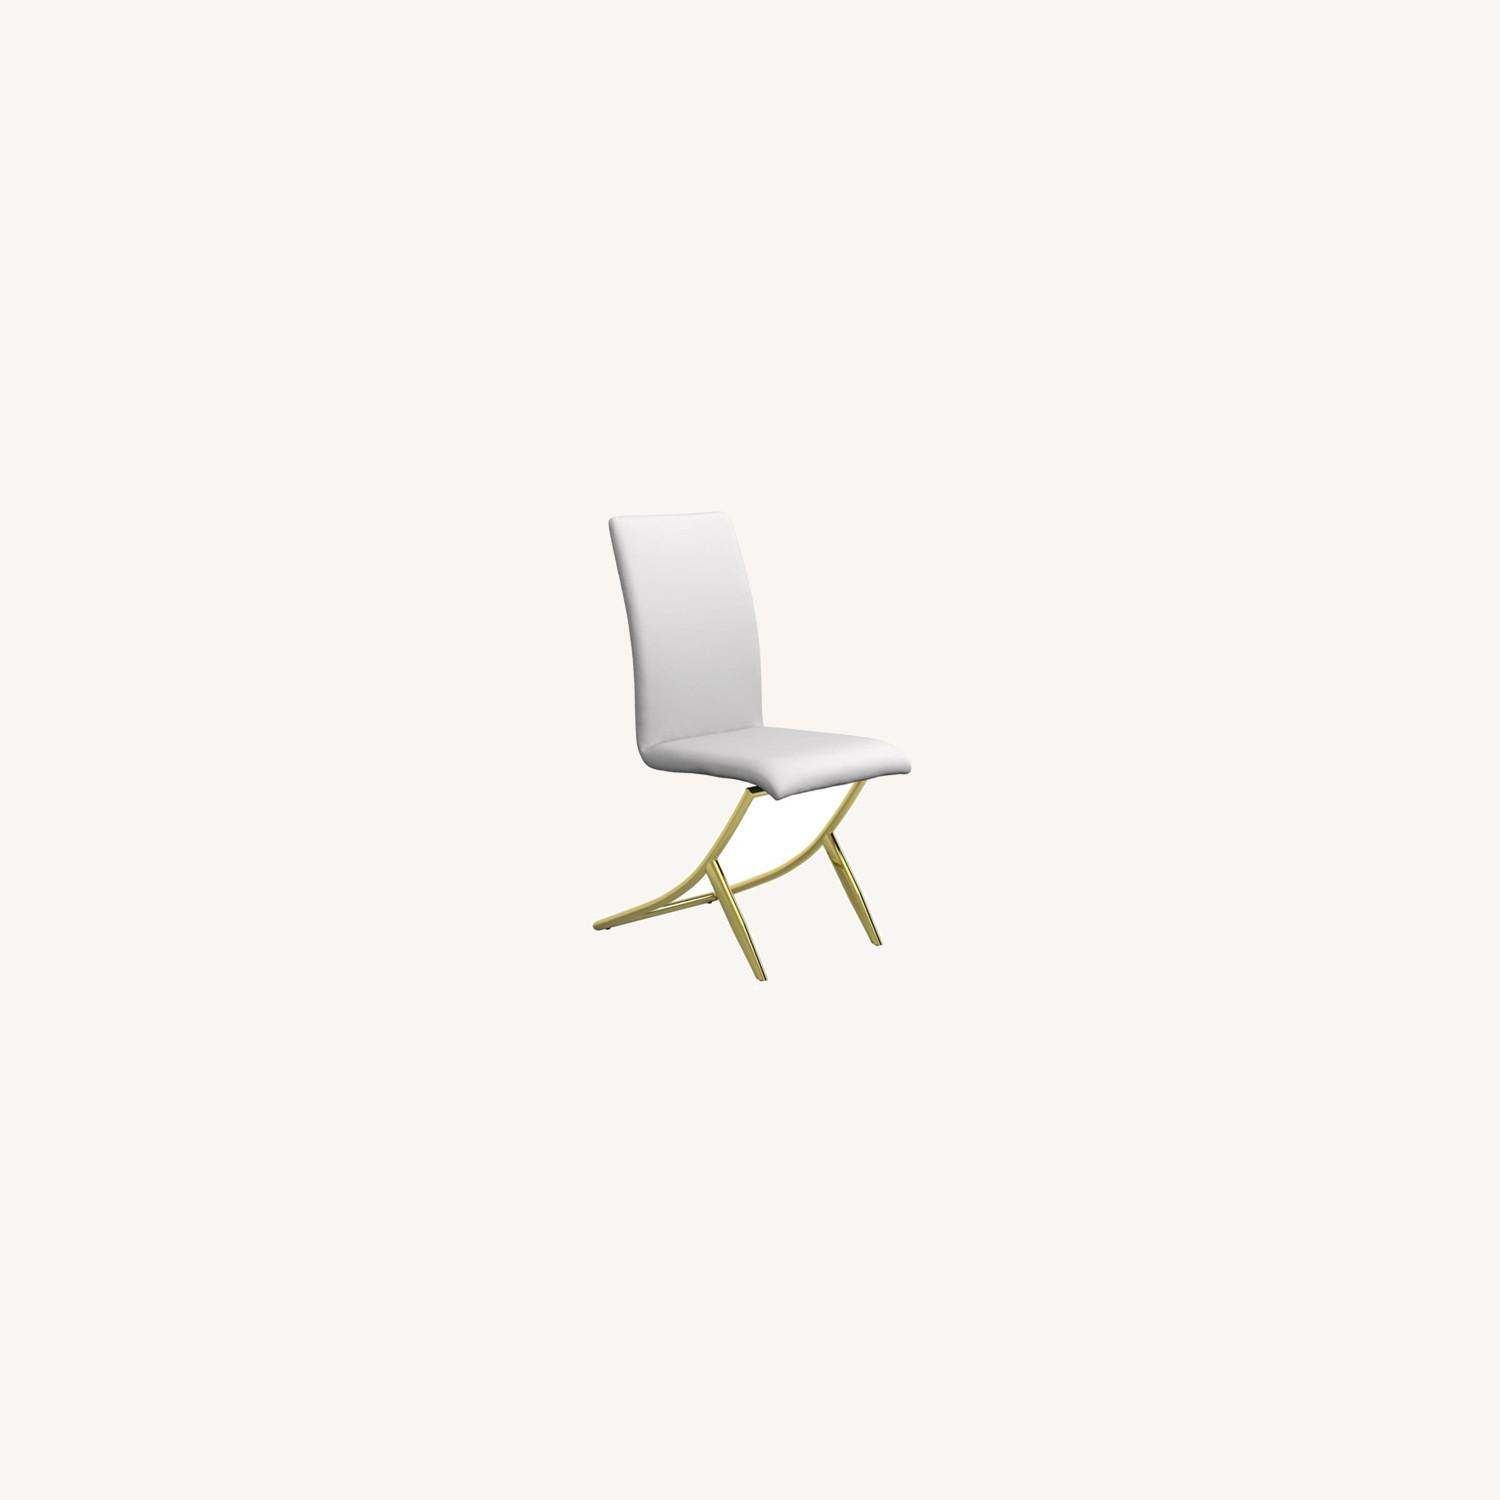 Side Chair In White W/ Crisscross Base Design - image-5